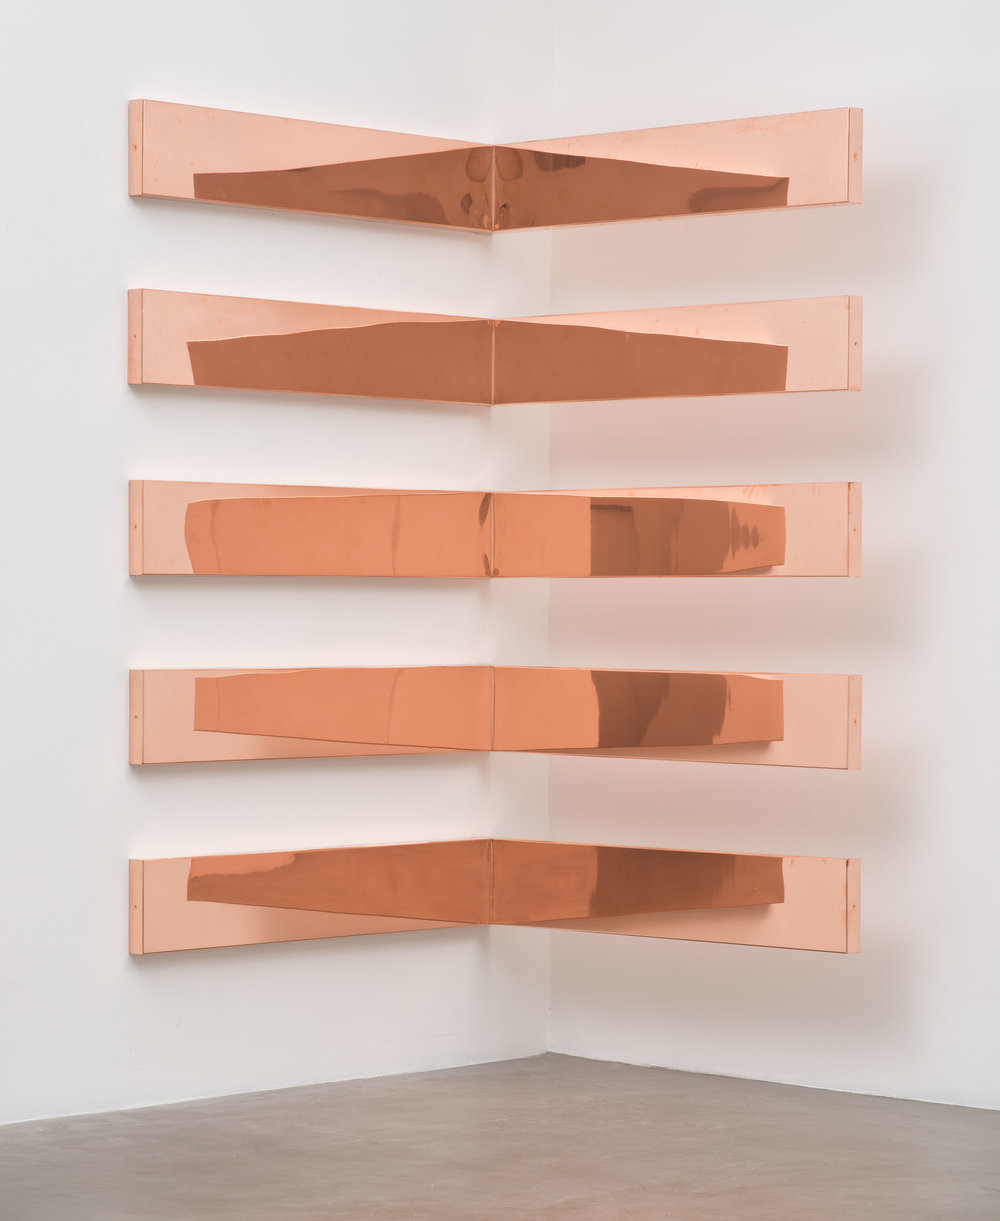 "Copper Surrogate (60"" x 120"" 48 ounce C11000 Copper Alloy, 90º Bend, 60"" Bisection/5 Sections: December 4/December 7, 2014, Miami Beach, Florida, February 10–12, 2015, Los Angeles, California)   2014–  Polished copper  11 x 60 x 60 inches each, 5 parts   Surrogates (Modular, Art Handling), 2014–    Walid AlBeshti, 2015"